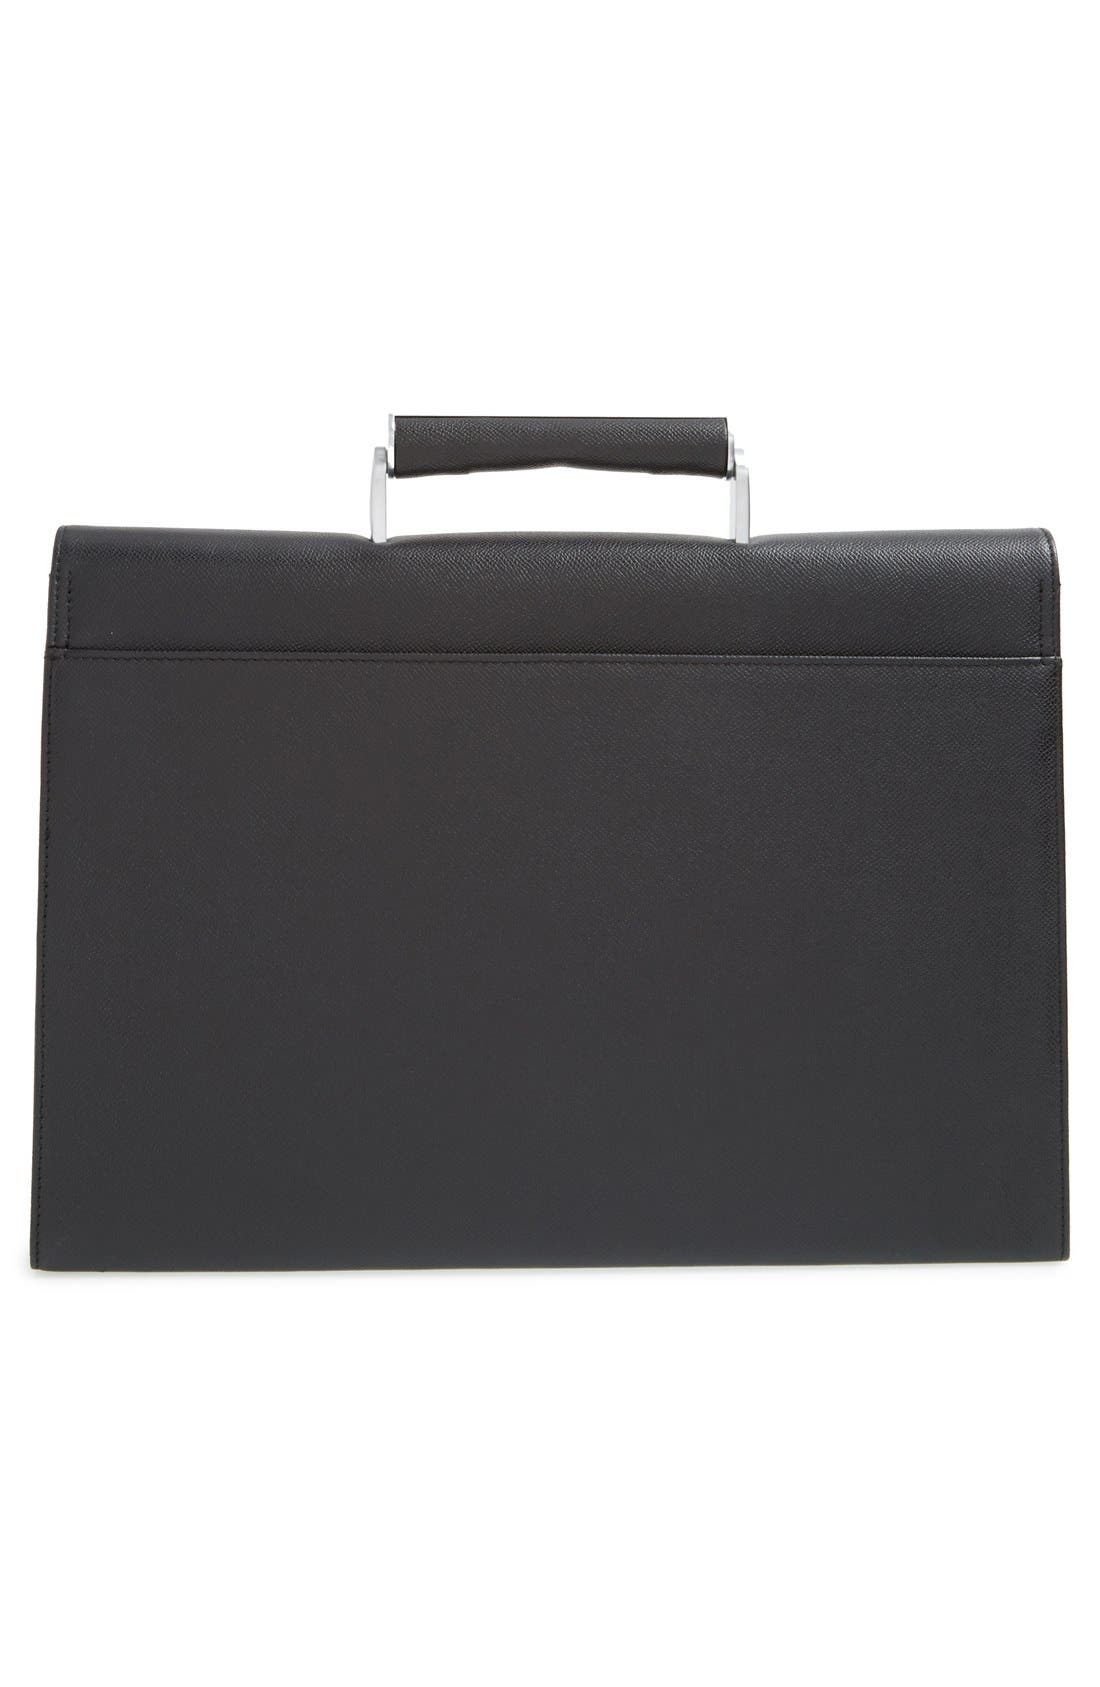 French Classic 3.0 Leather Briefcase,                             Alternate thumbnail 3, color,                             Black